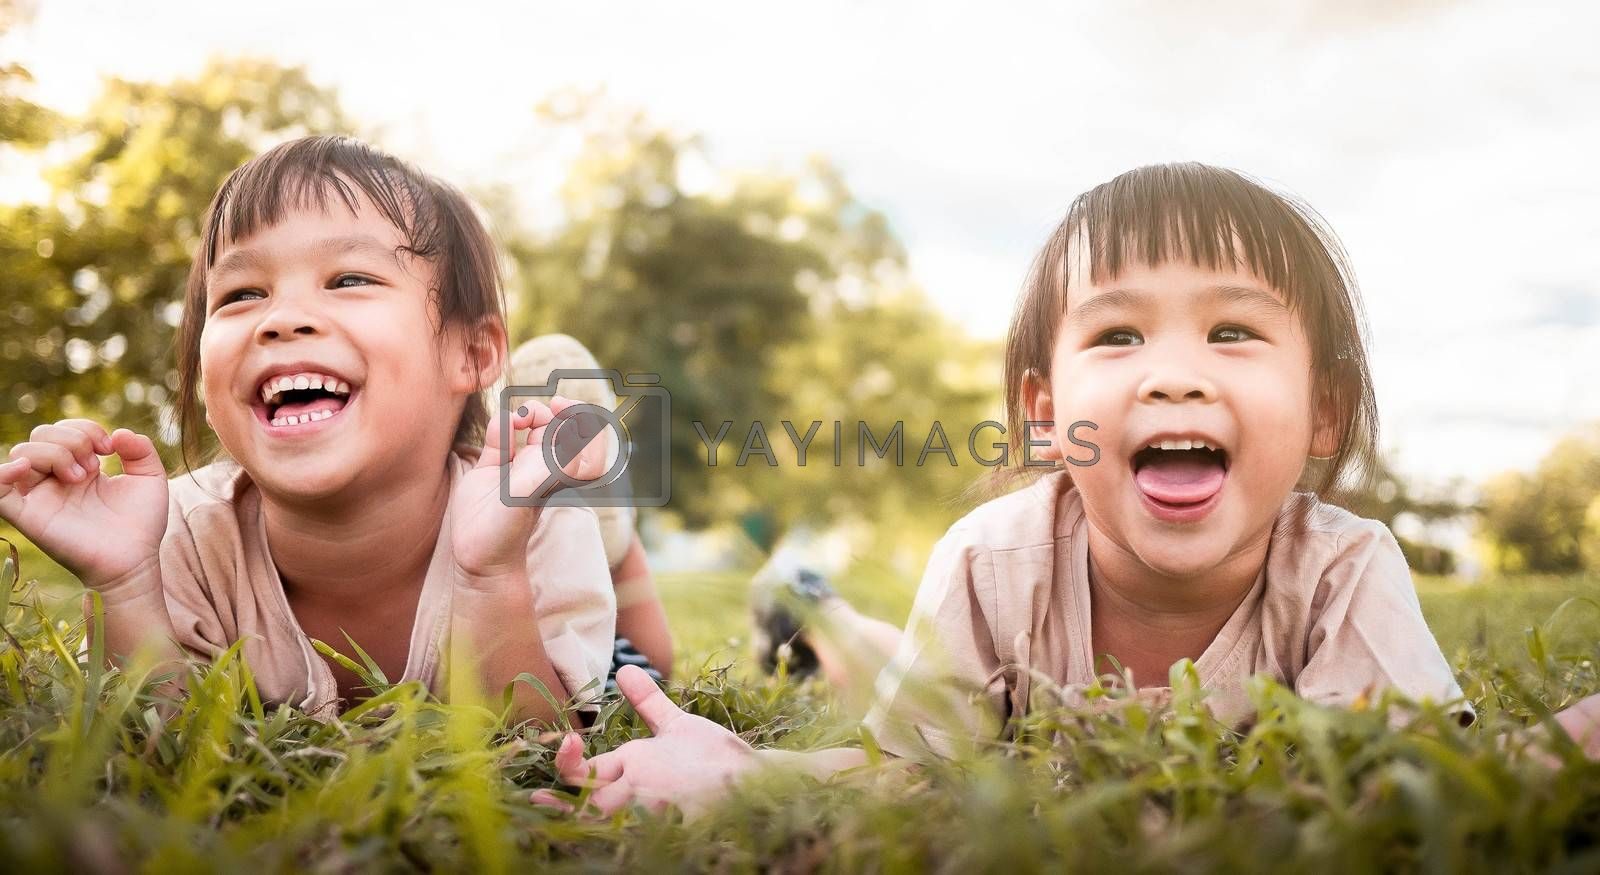 Two happy sibling girls lying on green grass outdoors in summer park.